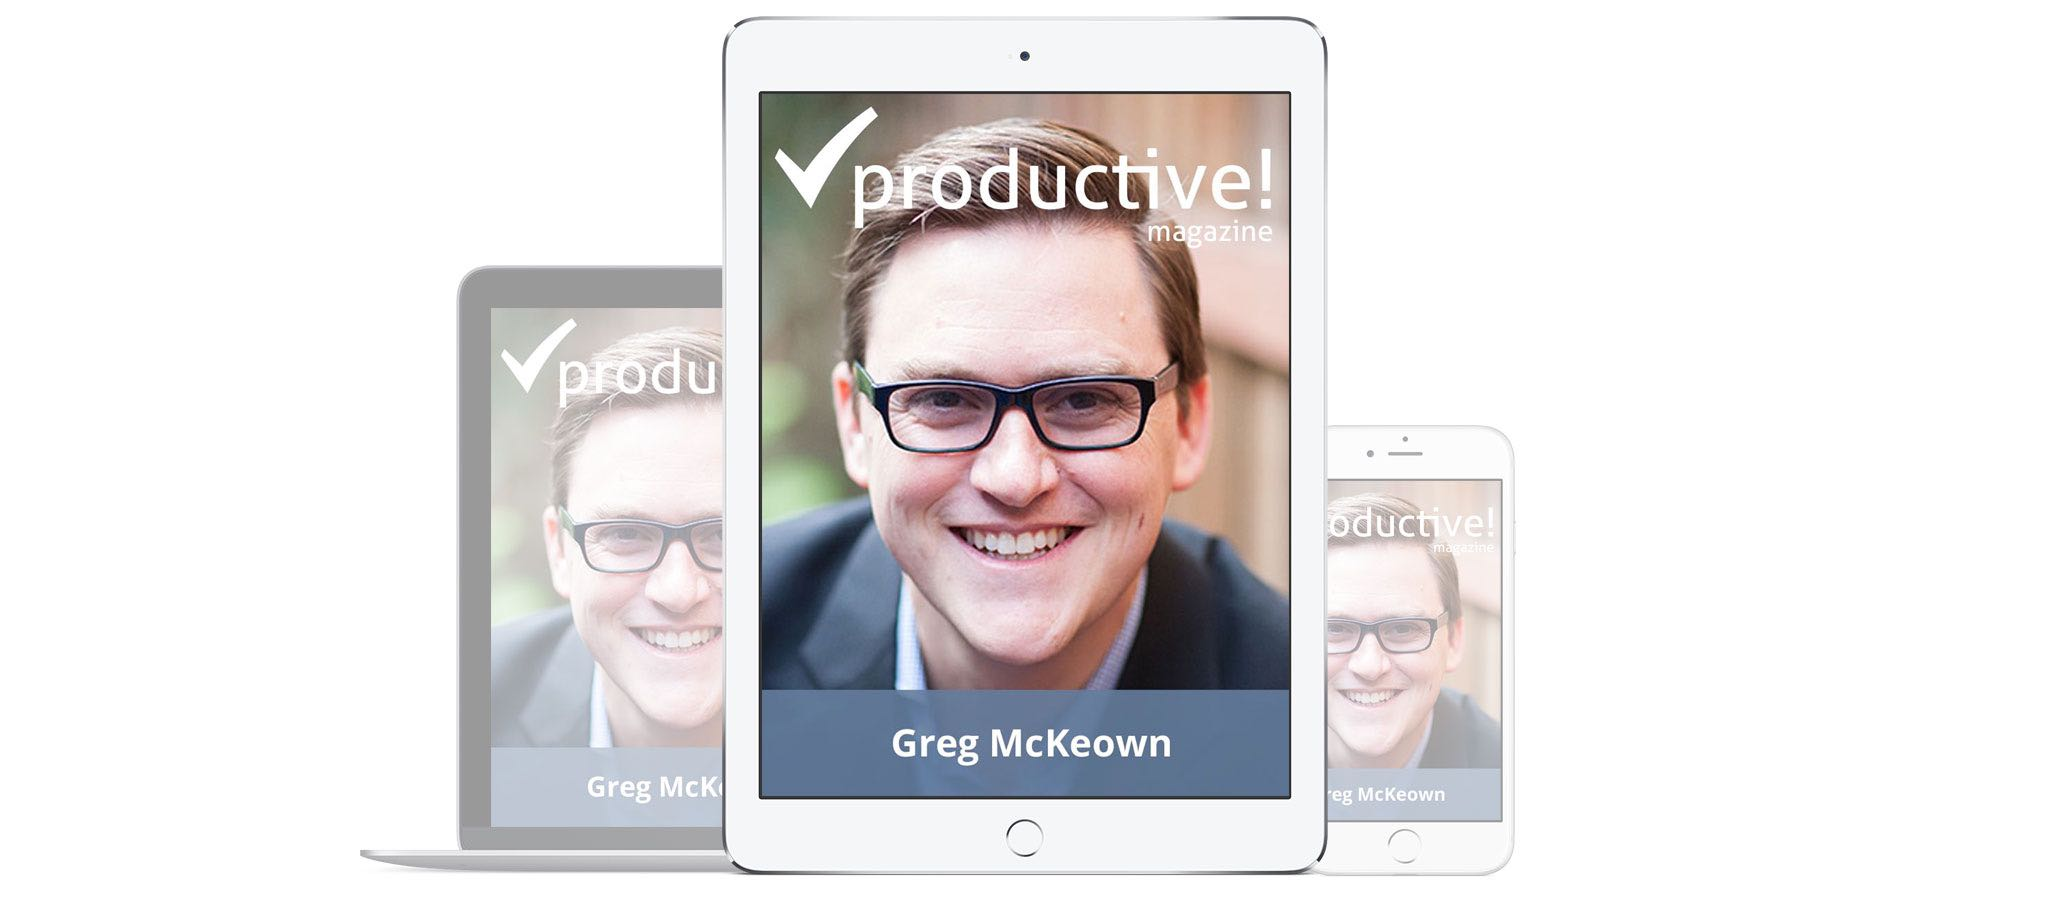 №34 with Greg McKeown